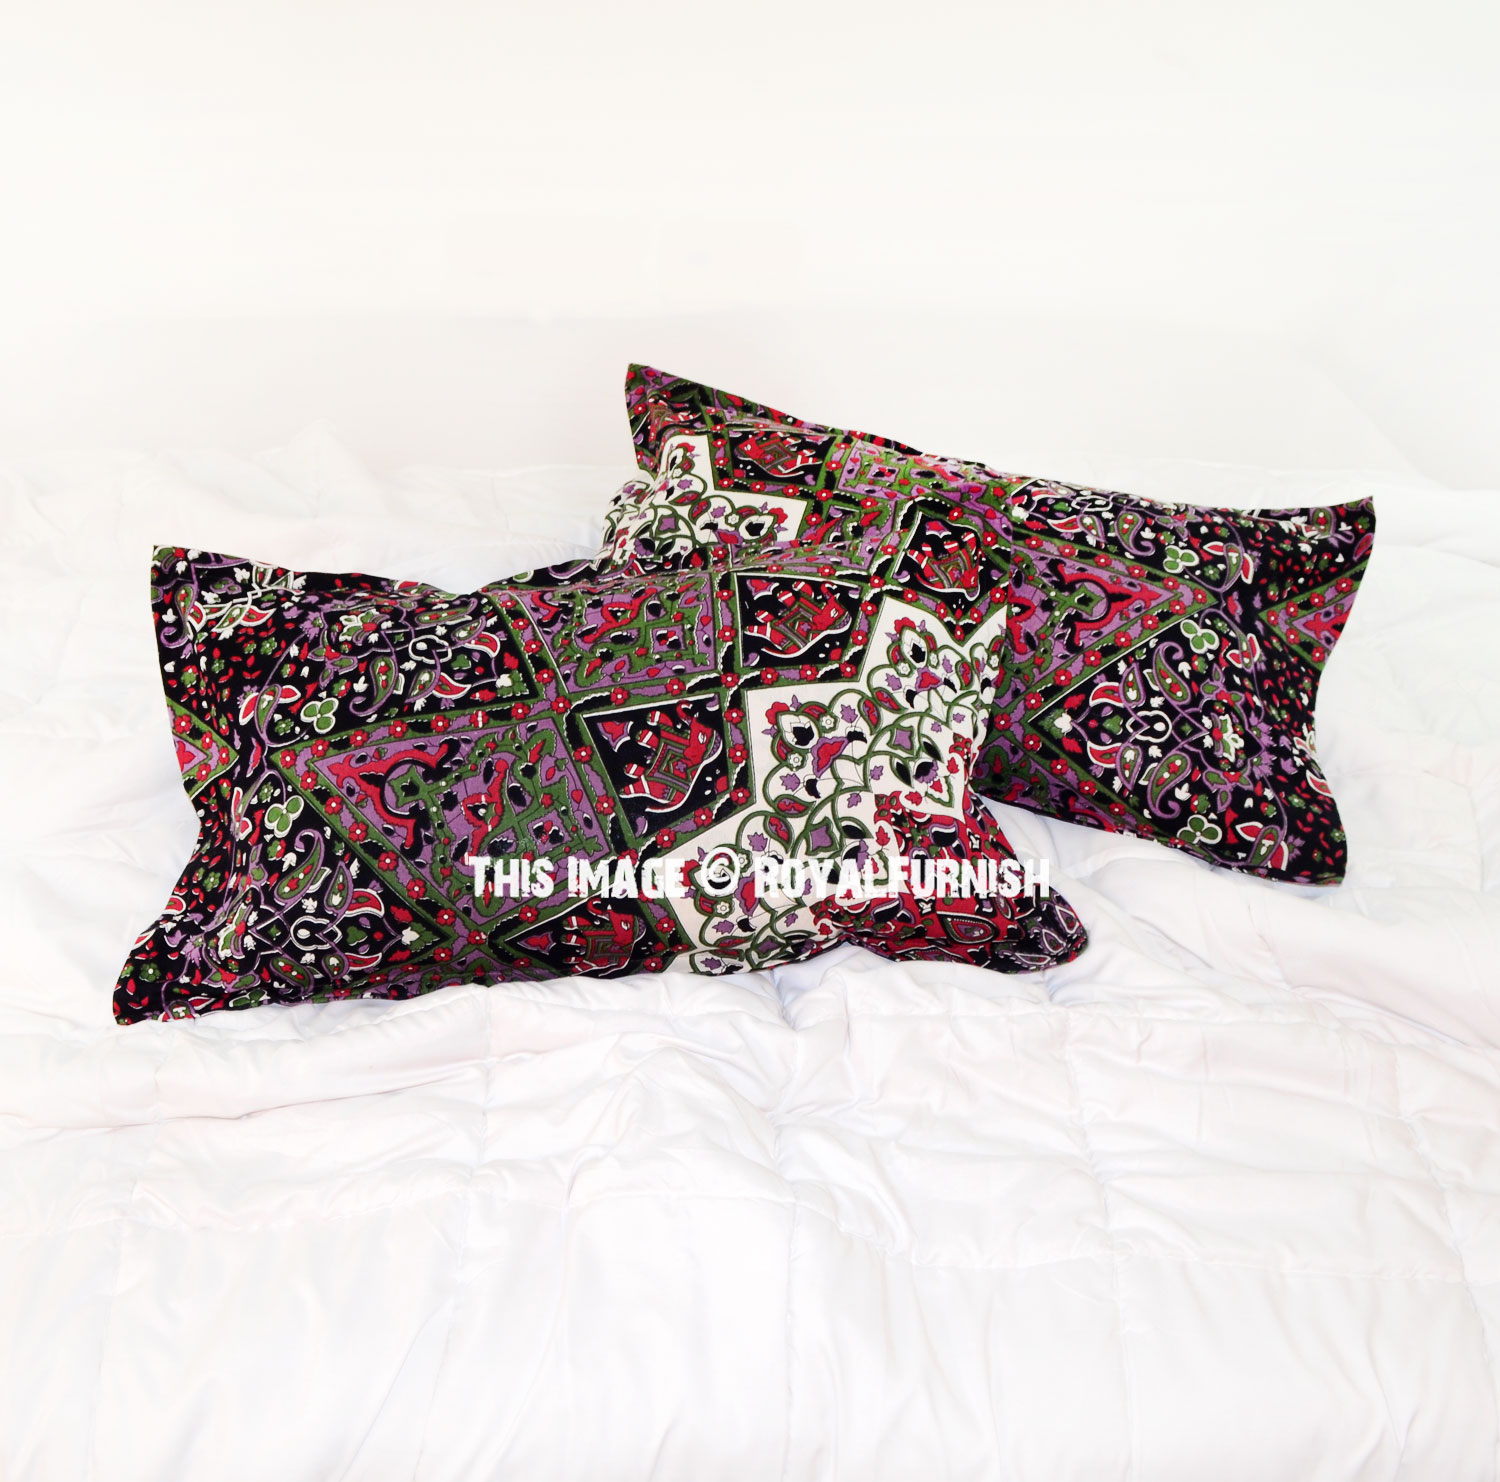 Black Throw Pillows For Bed : Black Green 3D Boho Star Medallion Bed Pillow Covers Set of Two - RoyalFurnish.com